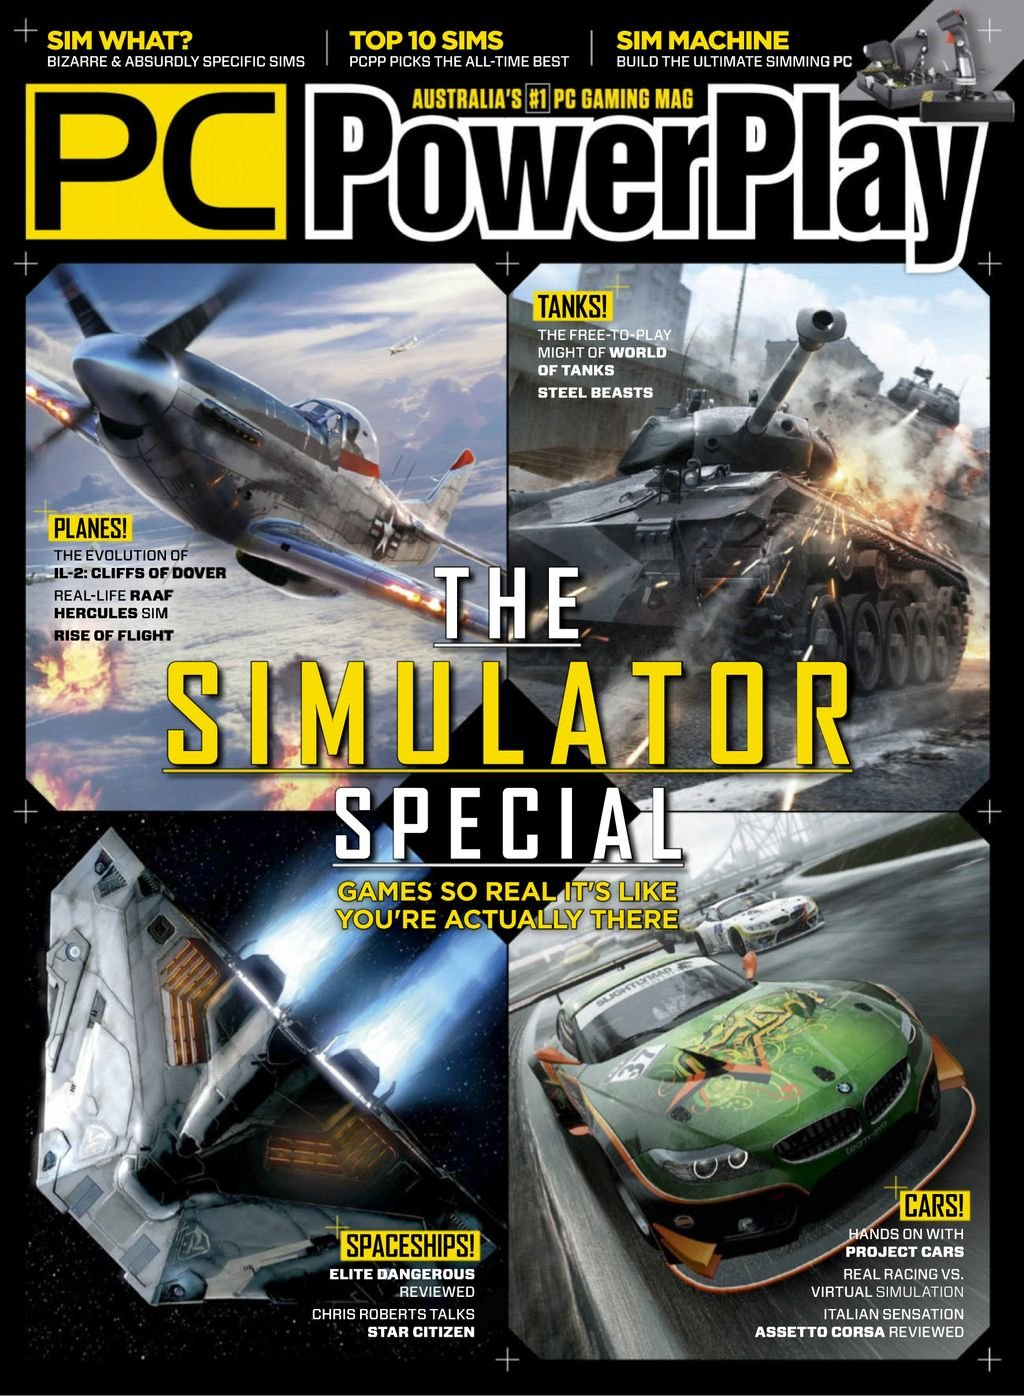 PC Powerplay 236 (February 2015)